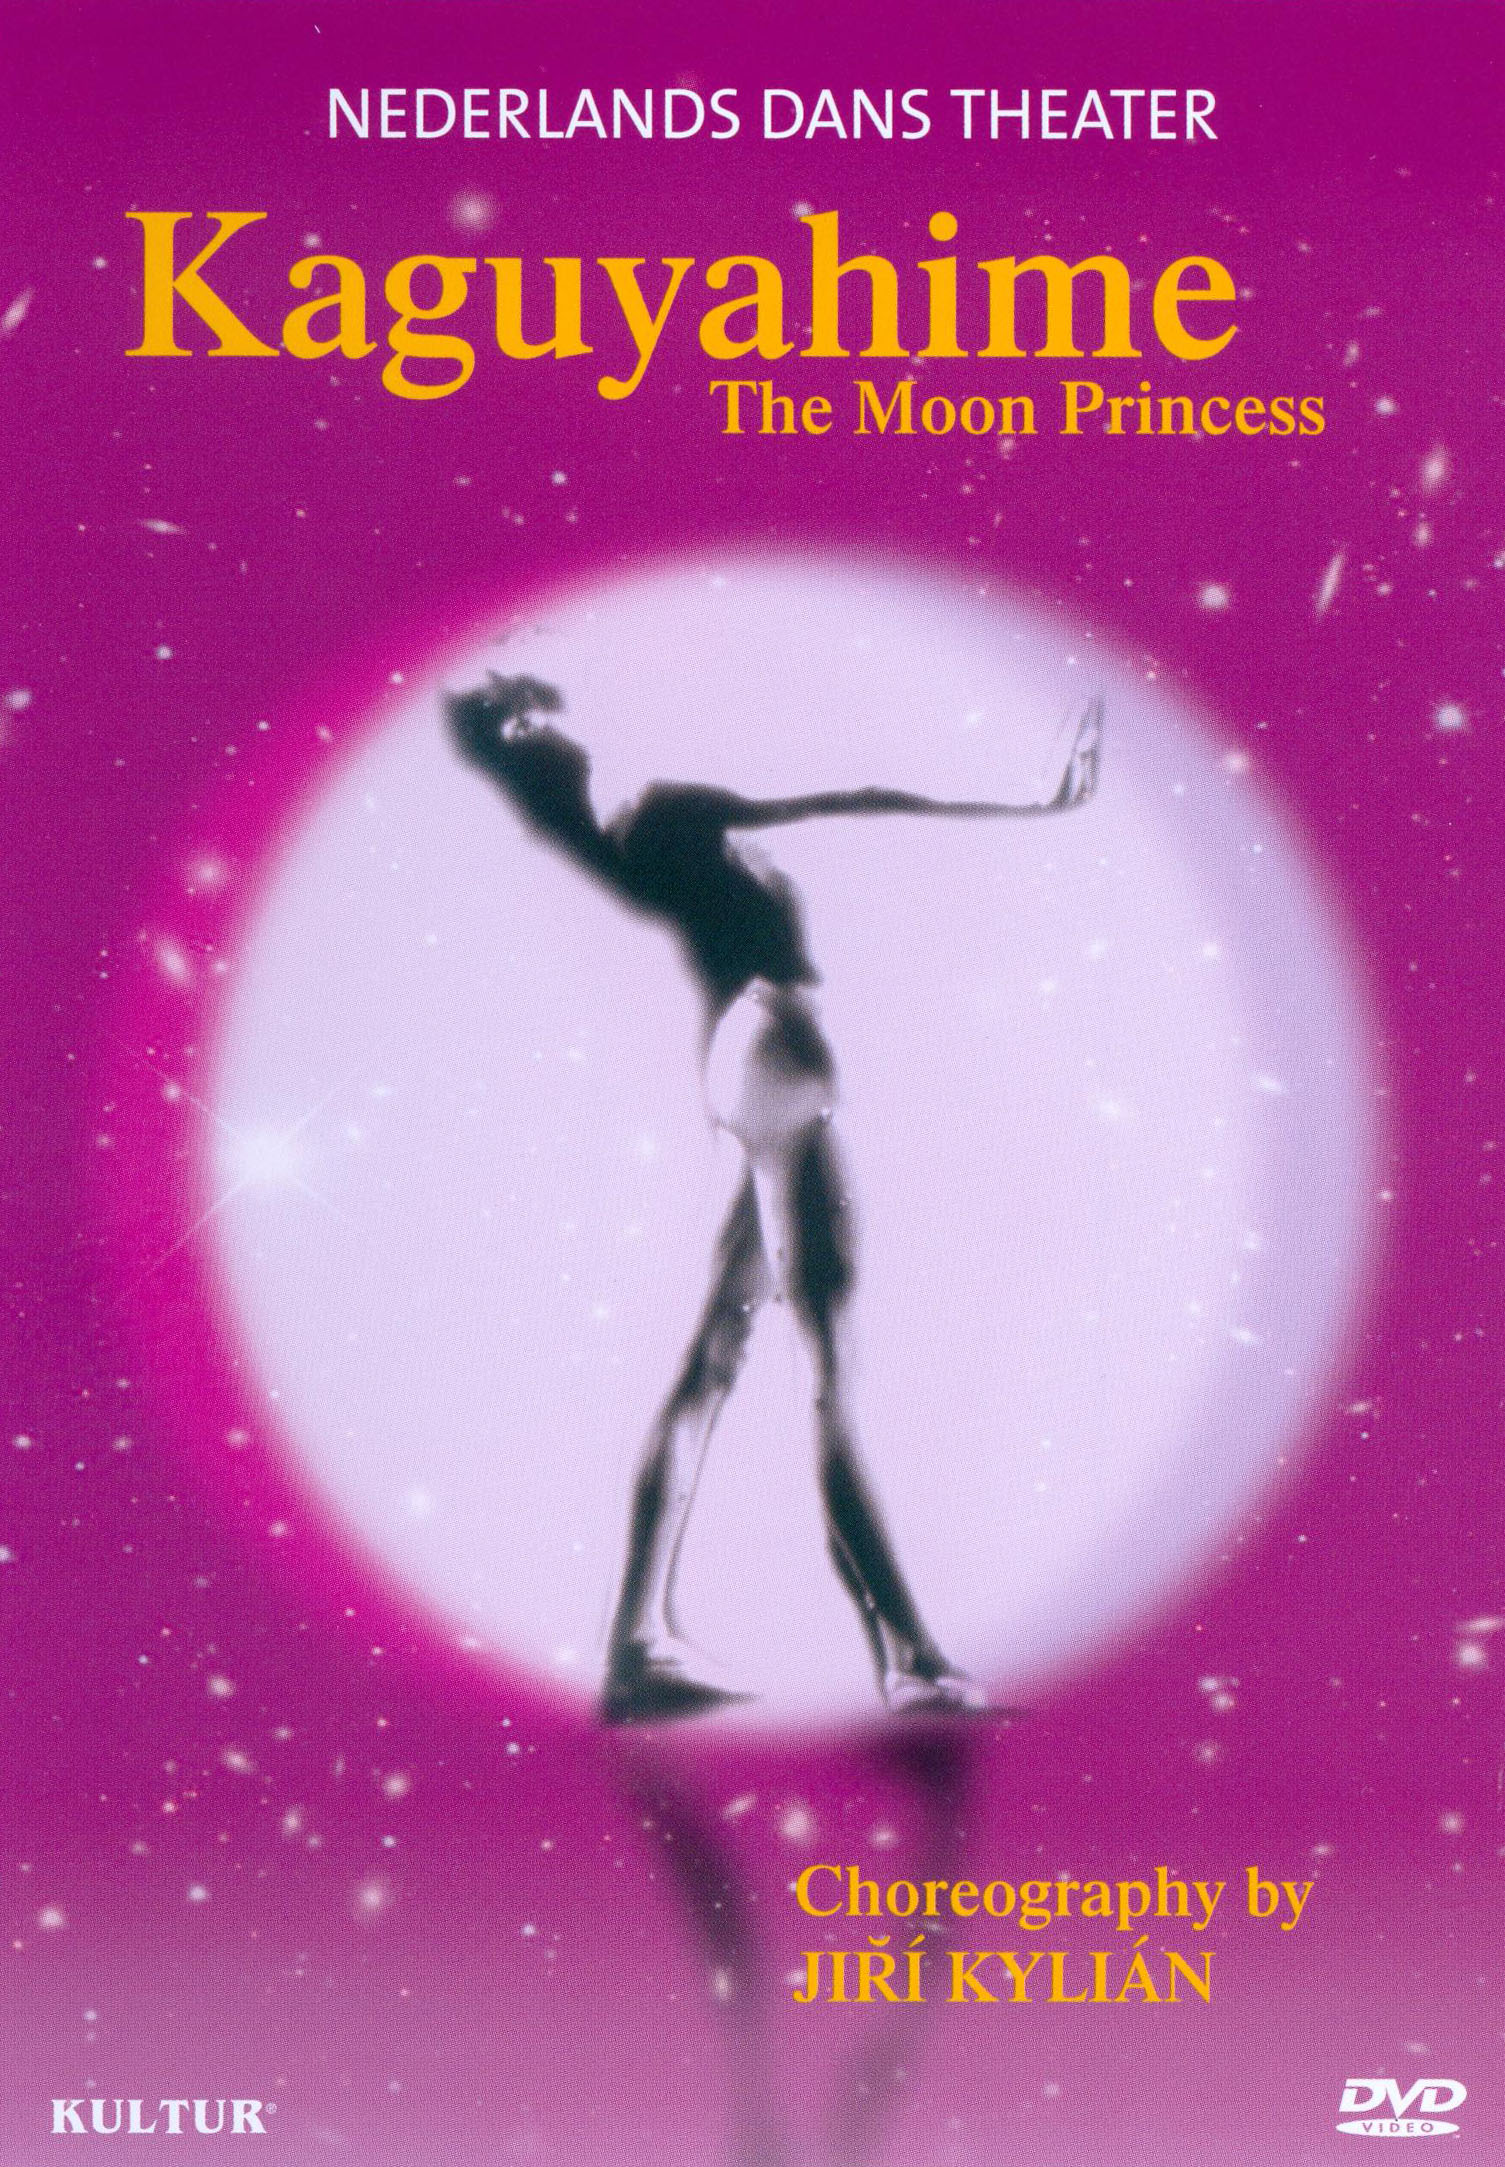 Kaguyahime: The Moon Princess (Nederlands Dans Theater)